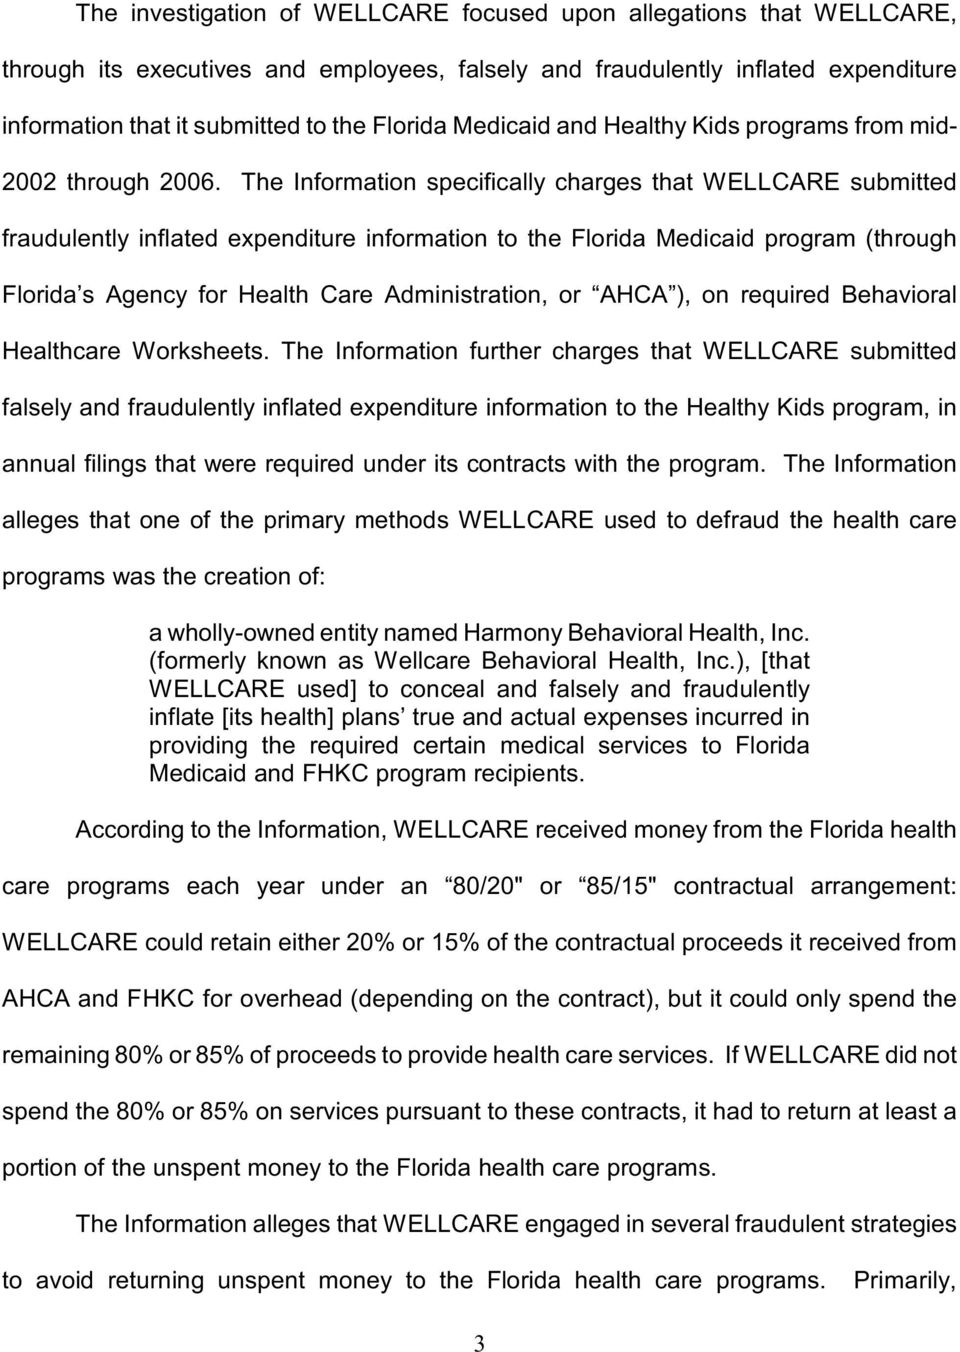 The Information specifically charges that WELLCARE submitted fraudulently inflated expenditure information to the Florida Medicaid program (through Florida s Agency for Health Care Administration, or